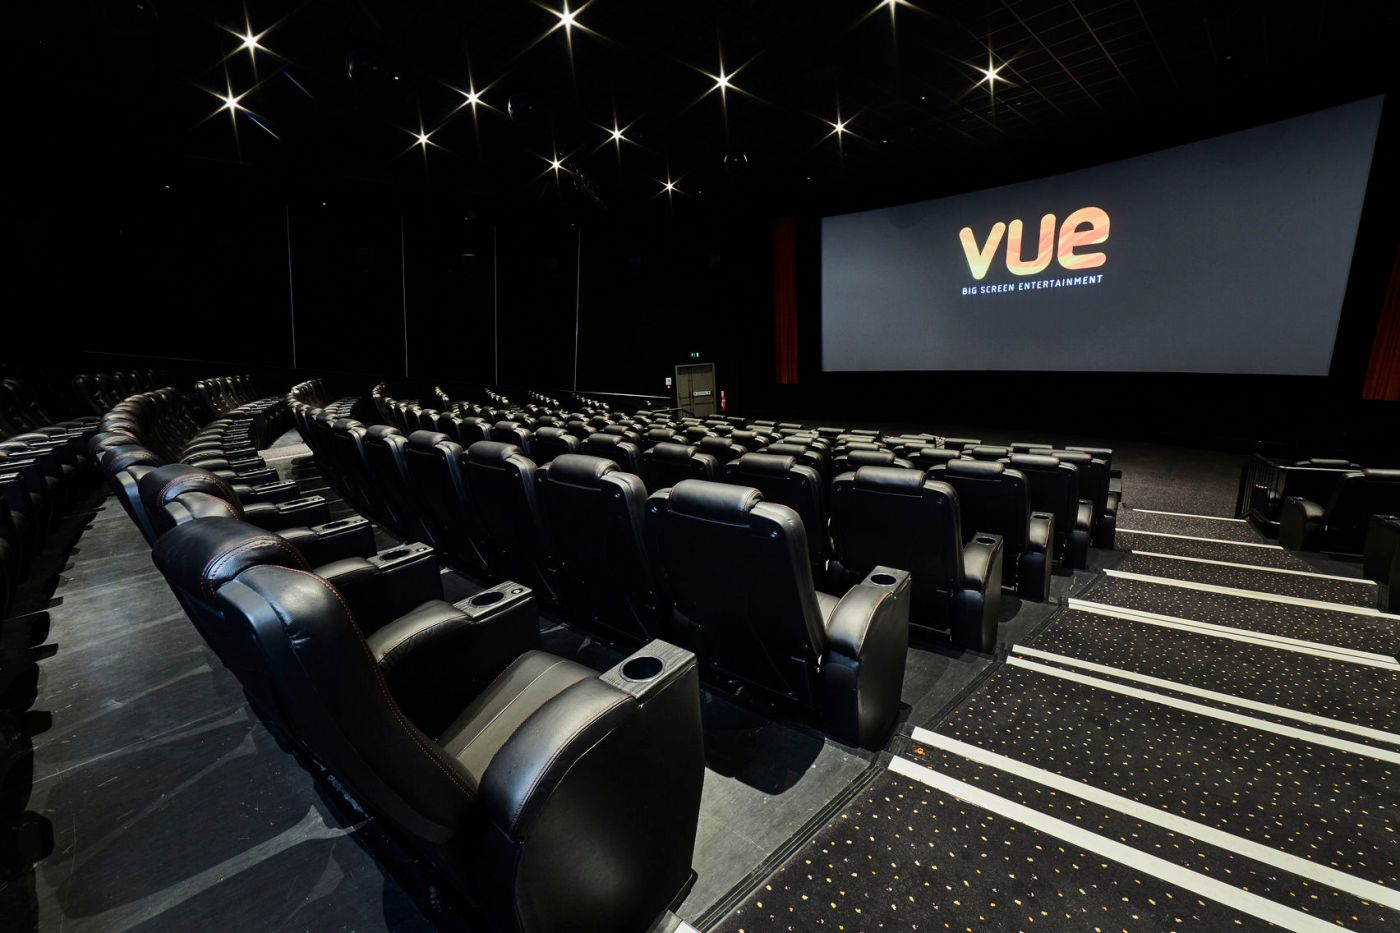 large cinema room with 'Vue' screen